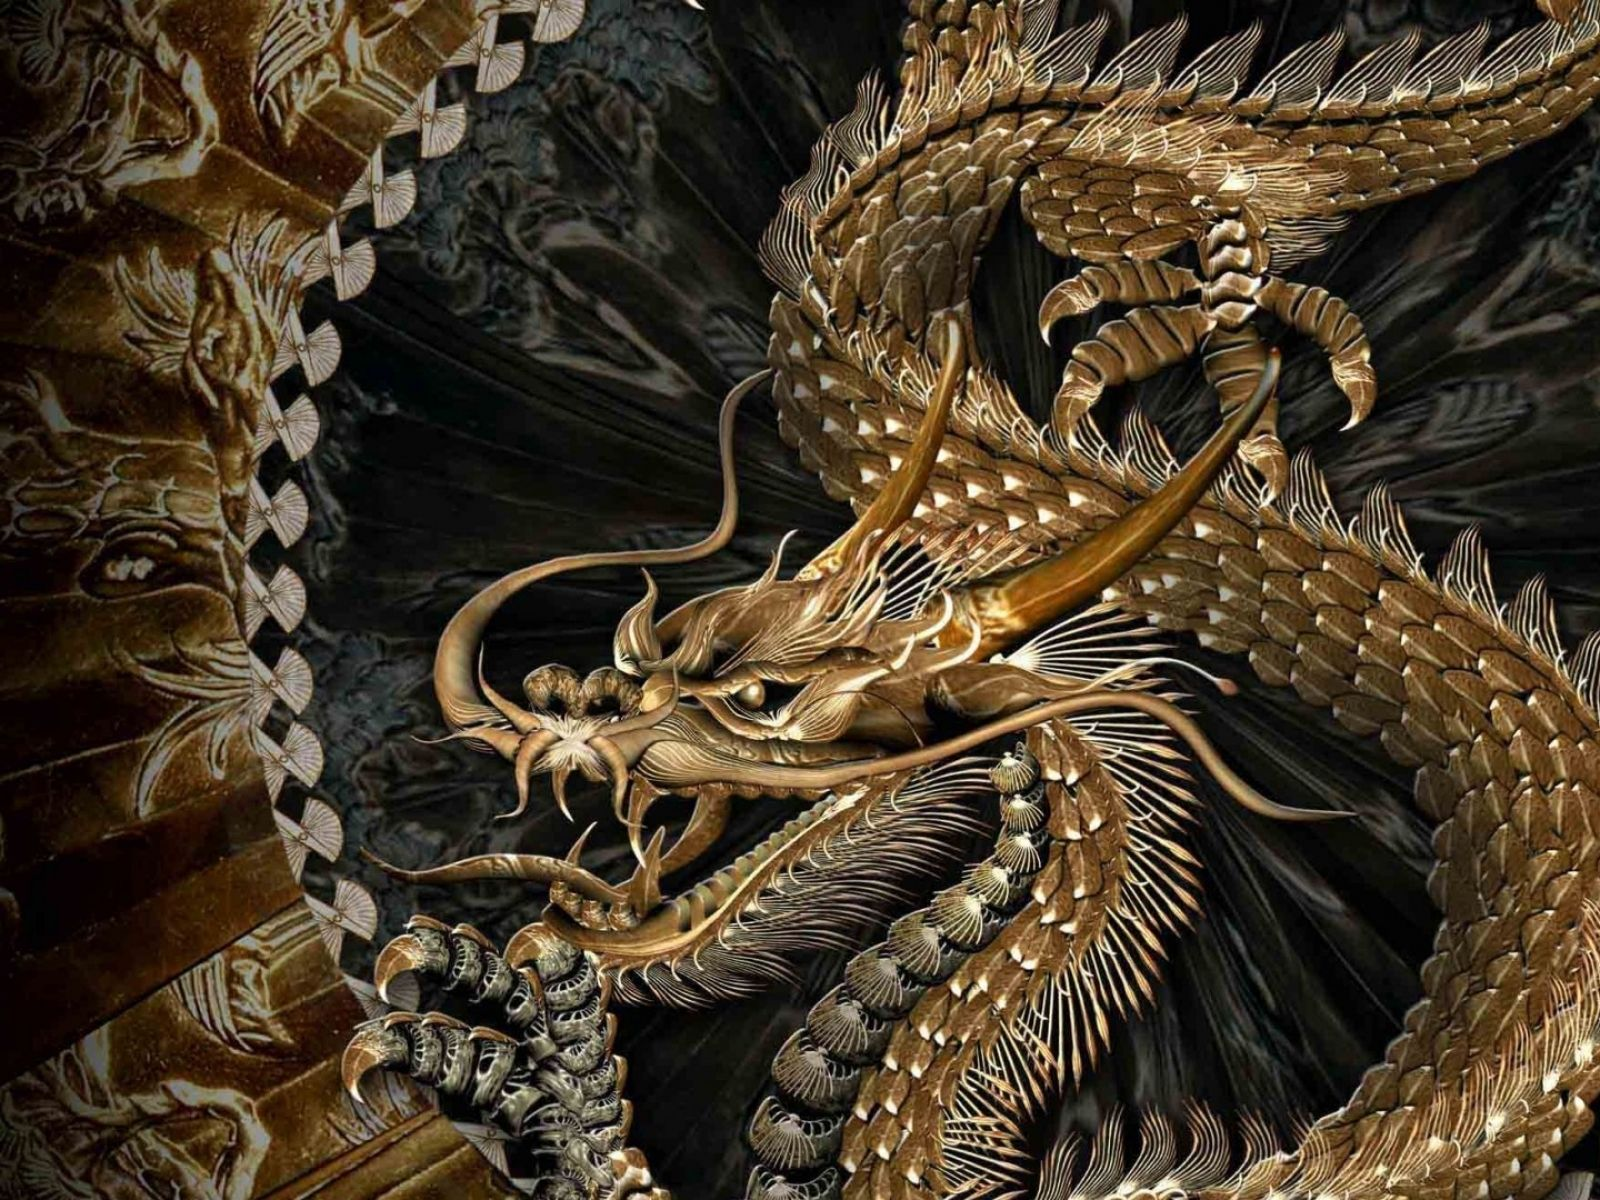 Chinese Dragon Art Wallpapers Top Free Chinese Dragon Art Backgrounds Wallpaperaccess